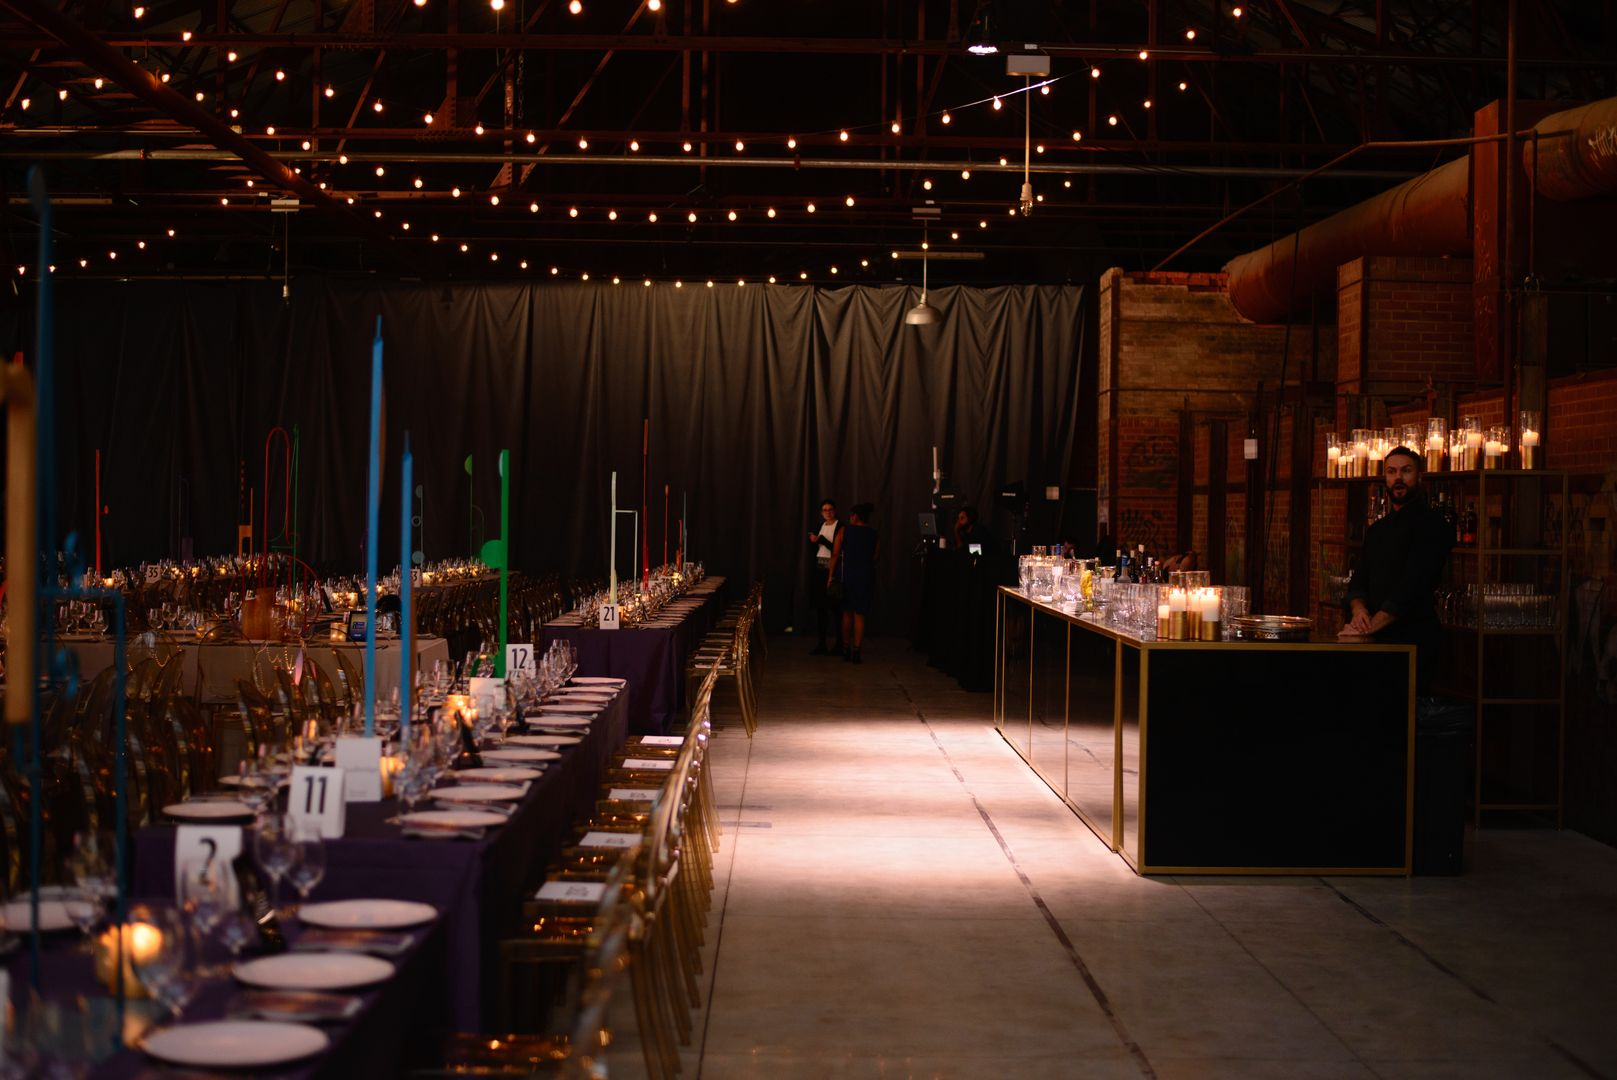 Table Setting at Evergreen Brick Works, Catering at Evergreen Brick Works